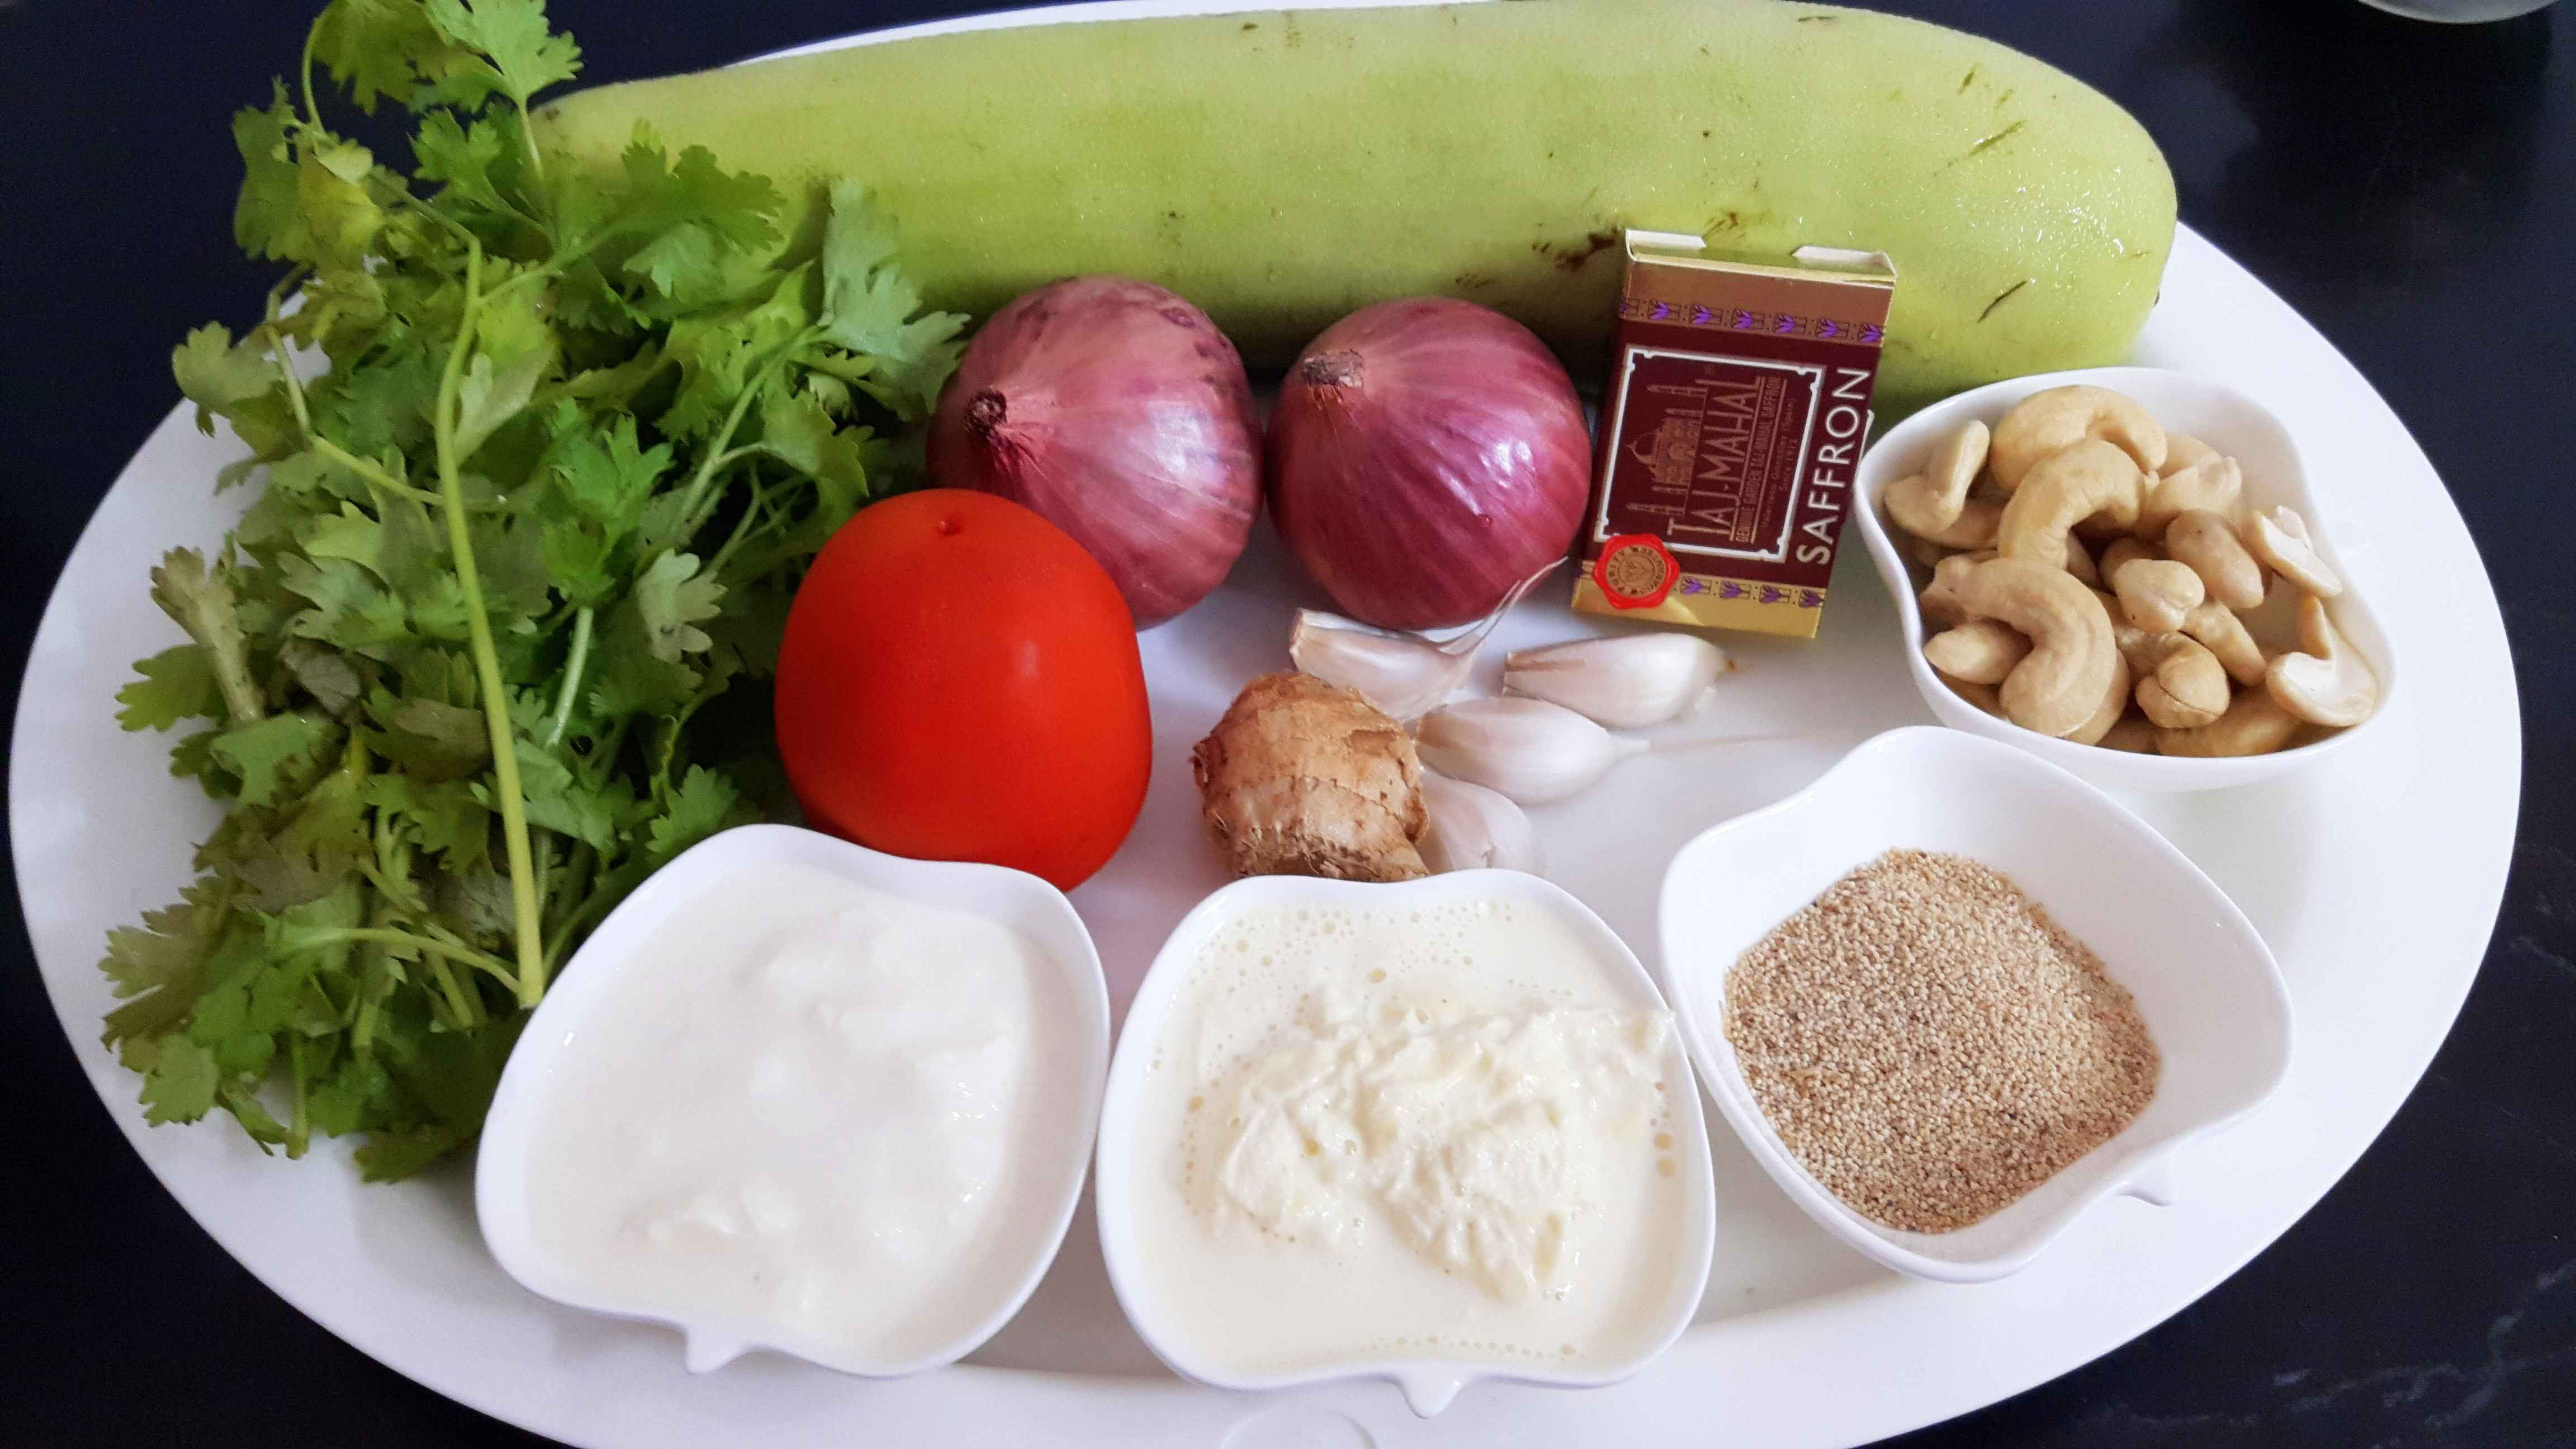 Ingredients for gravy